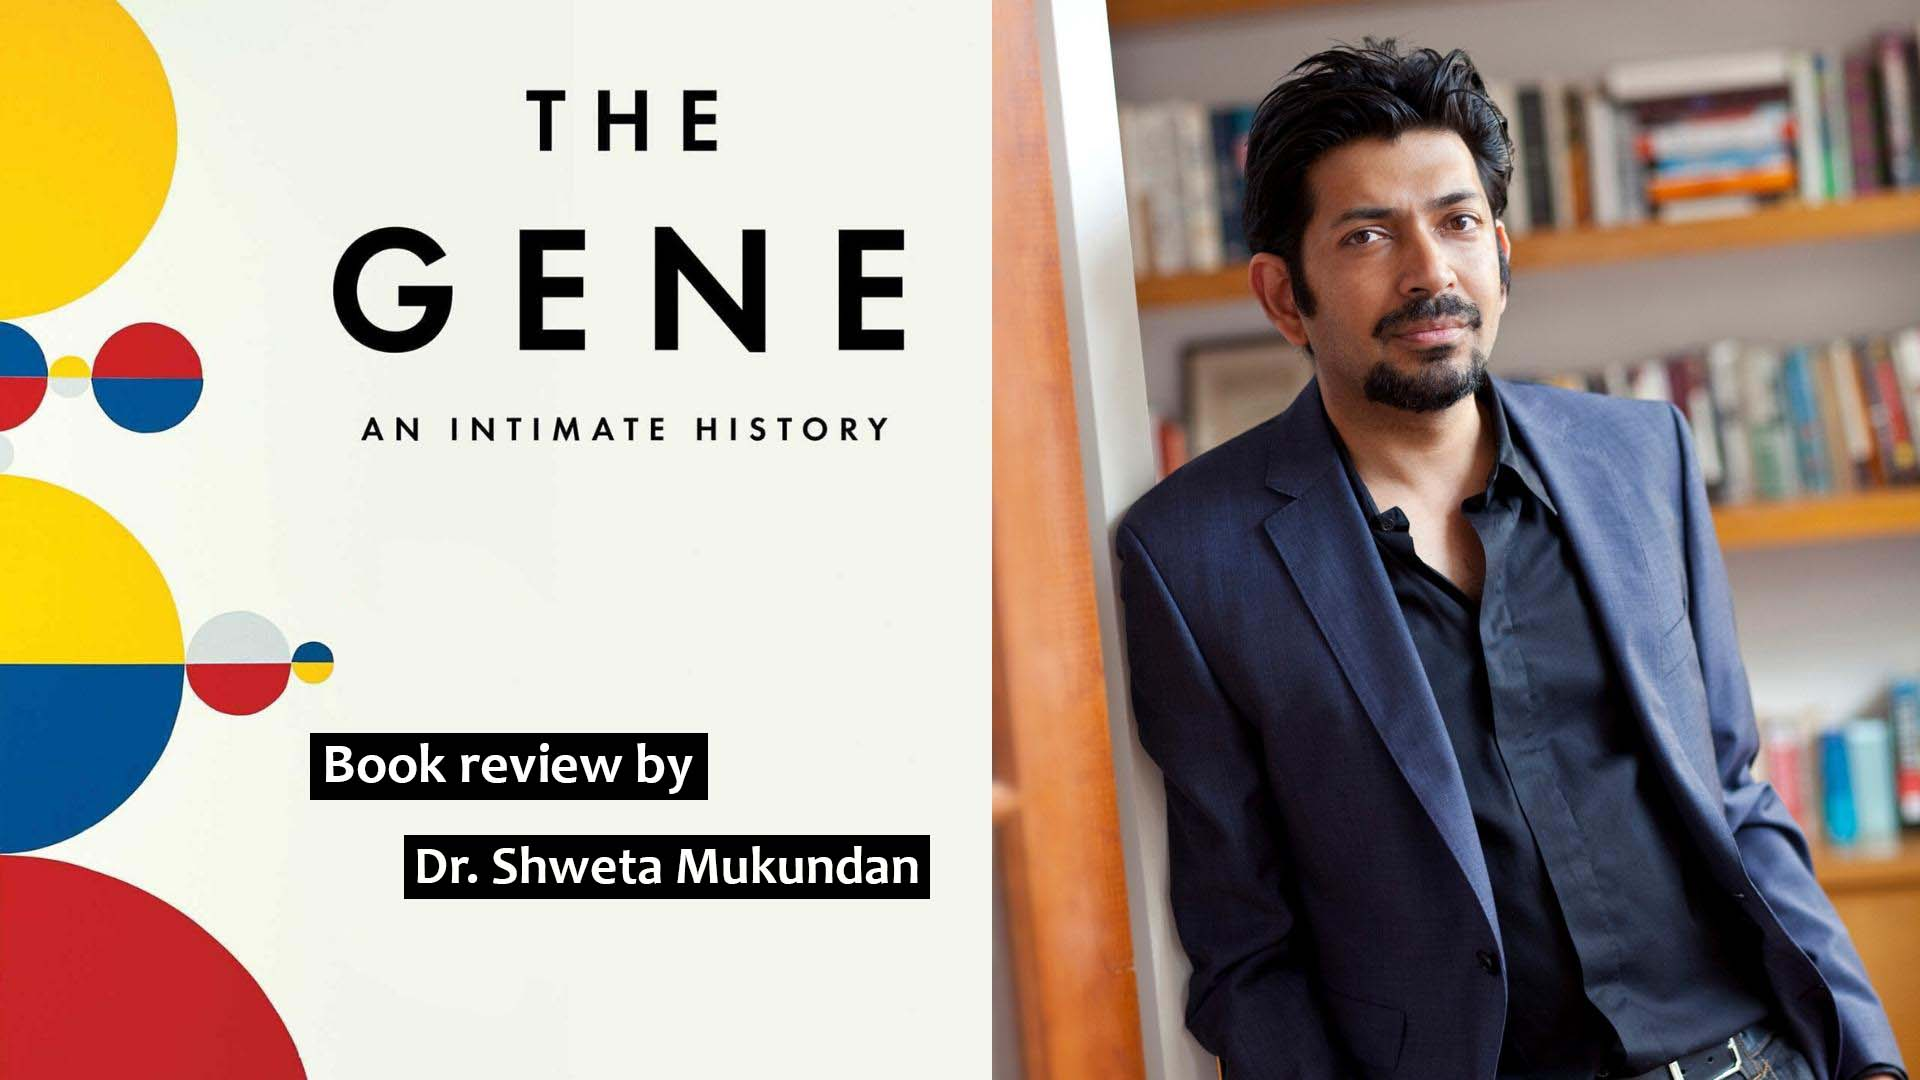 Book Review: The Gene-an intimate history by Siddhartha Mukherjee